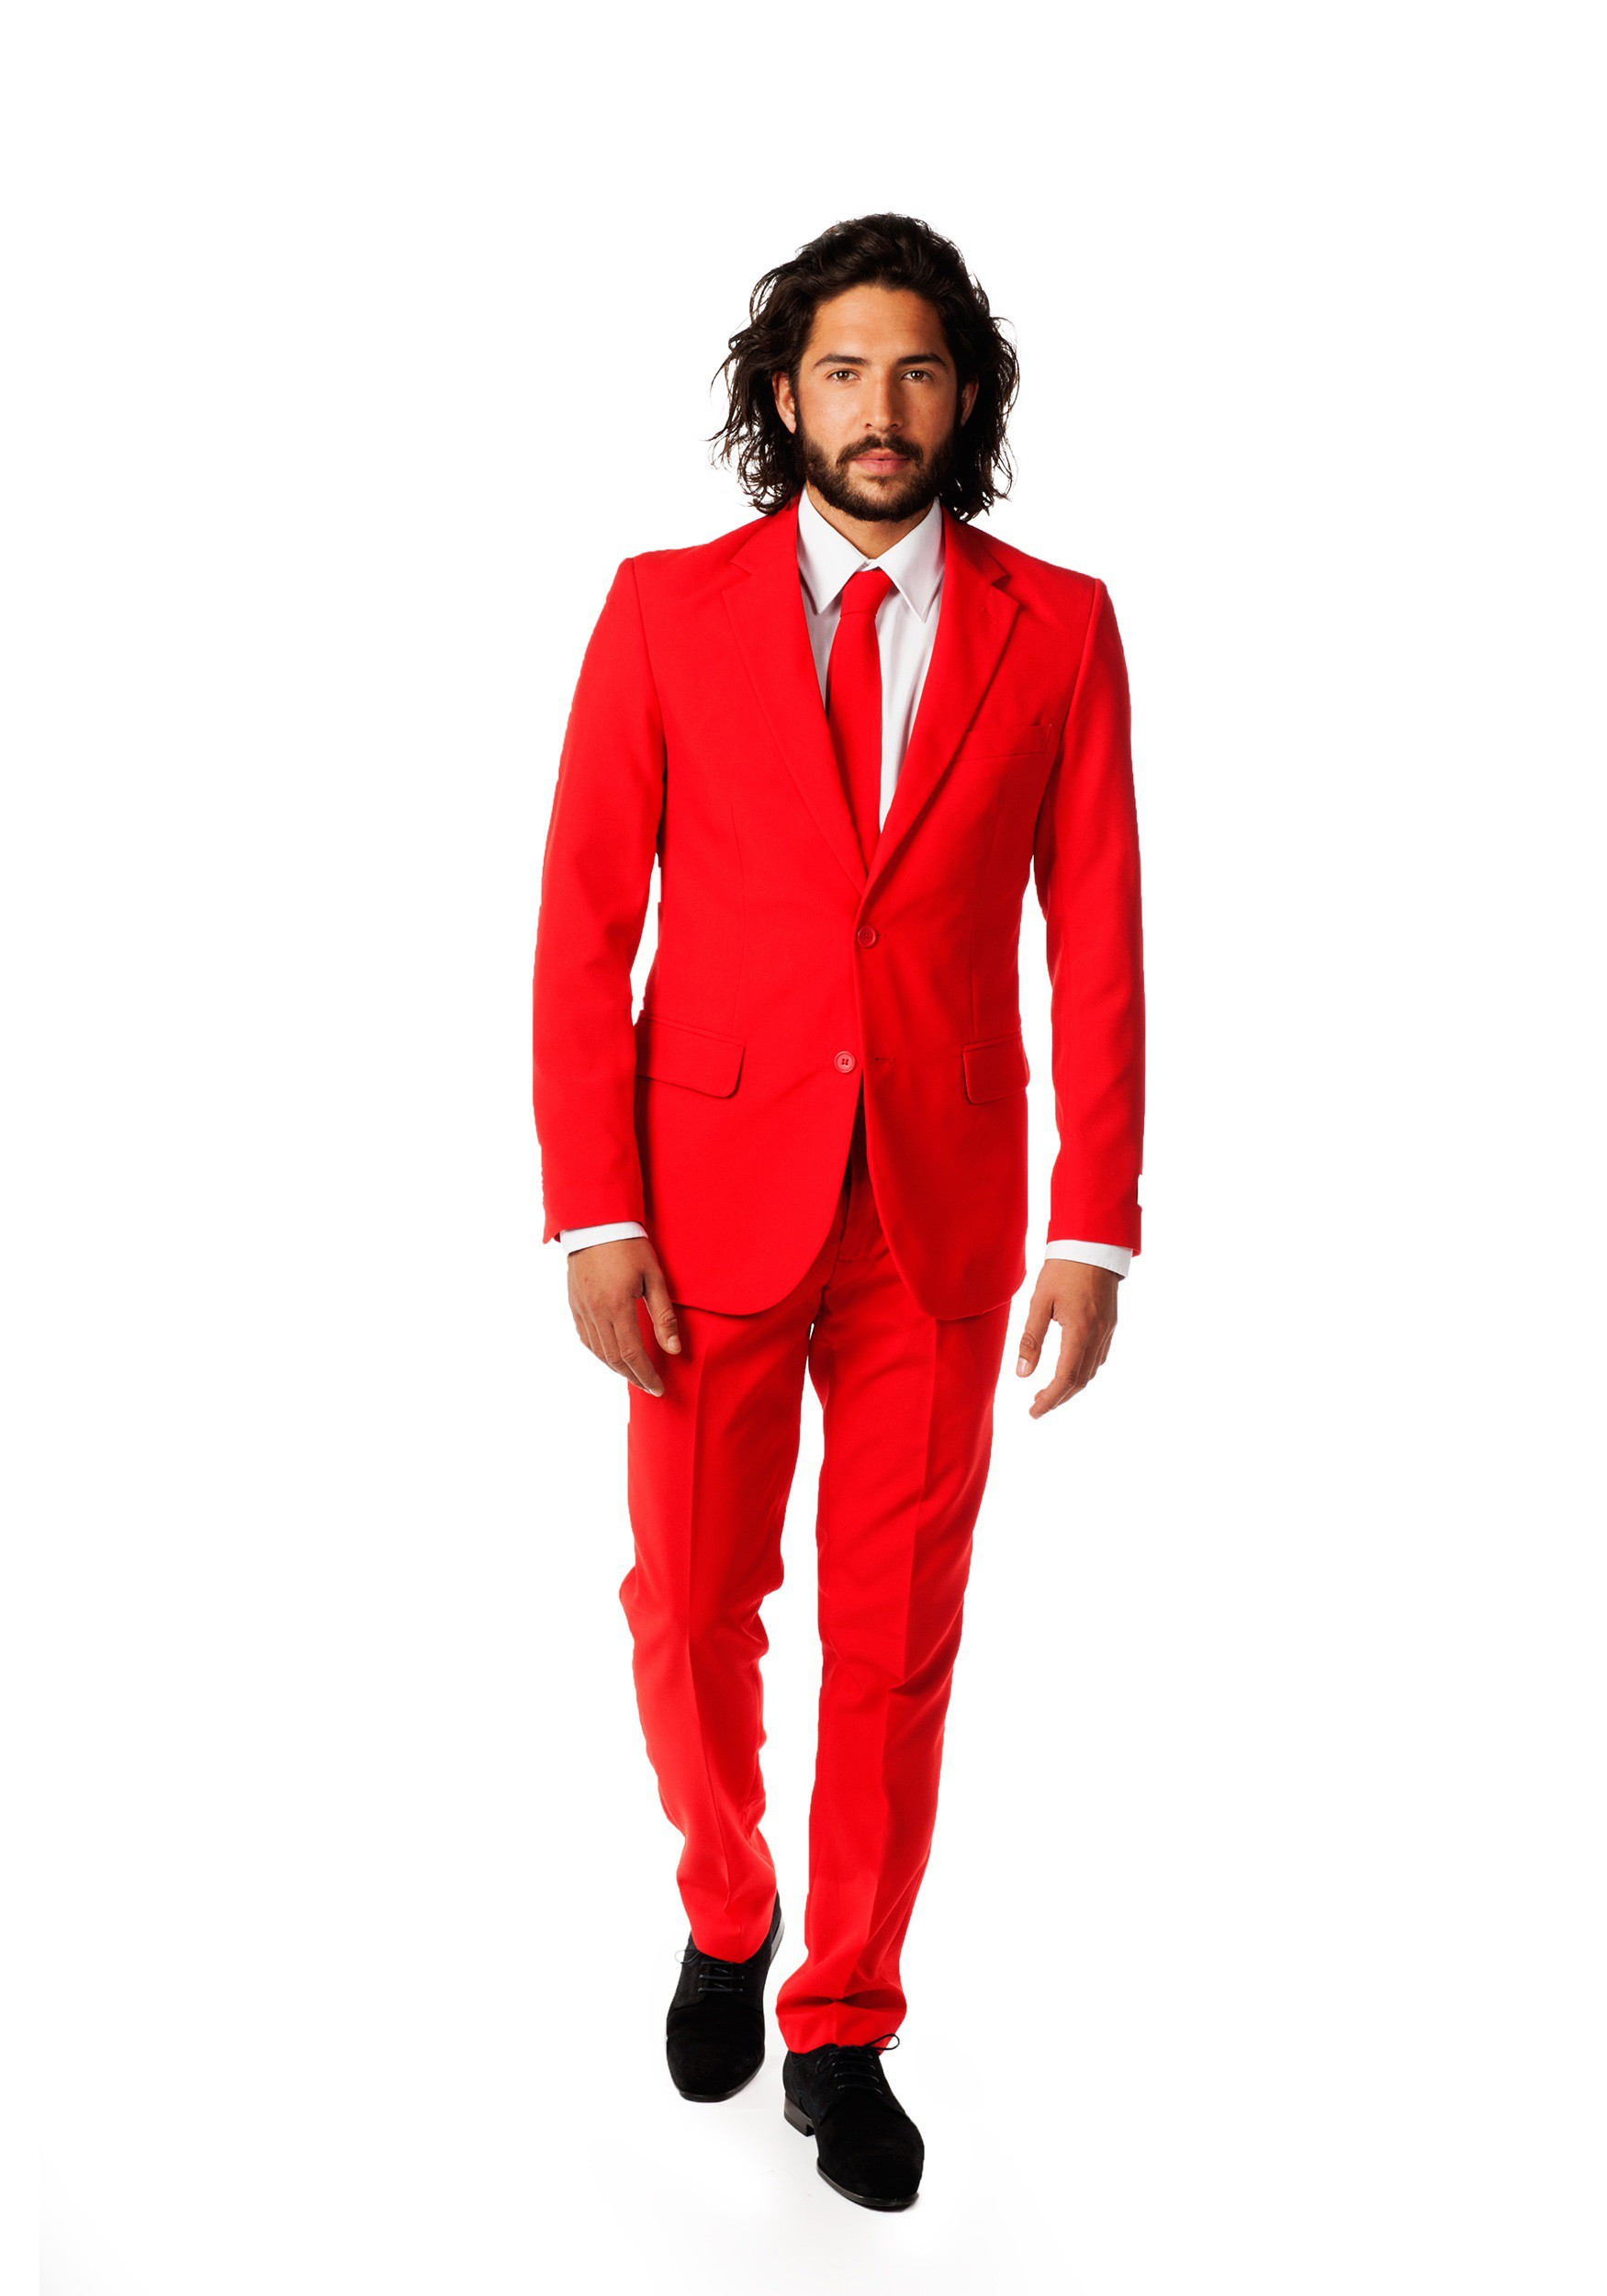 875de2648f6271 Mens Opposuits Red Suit